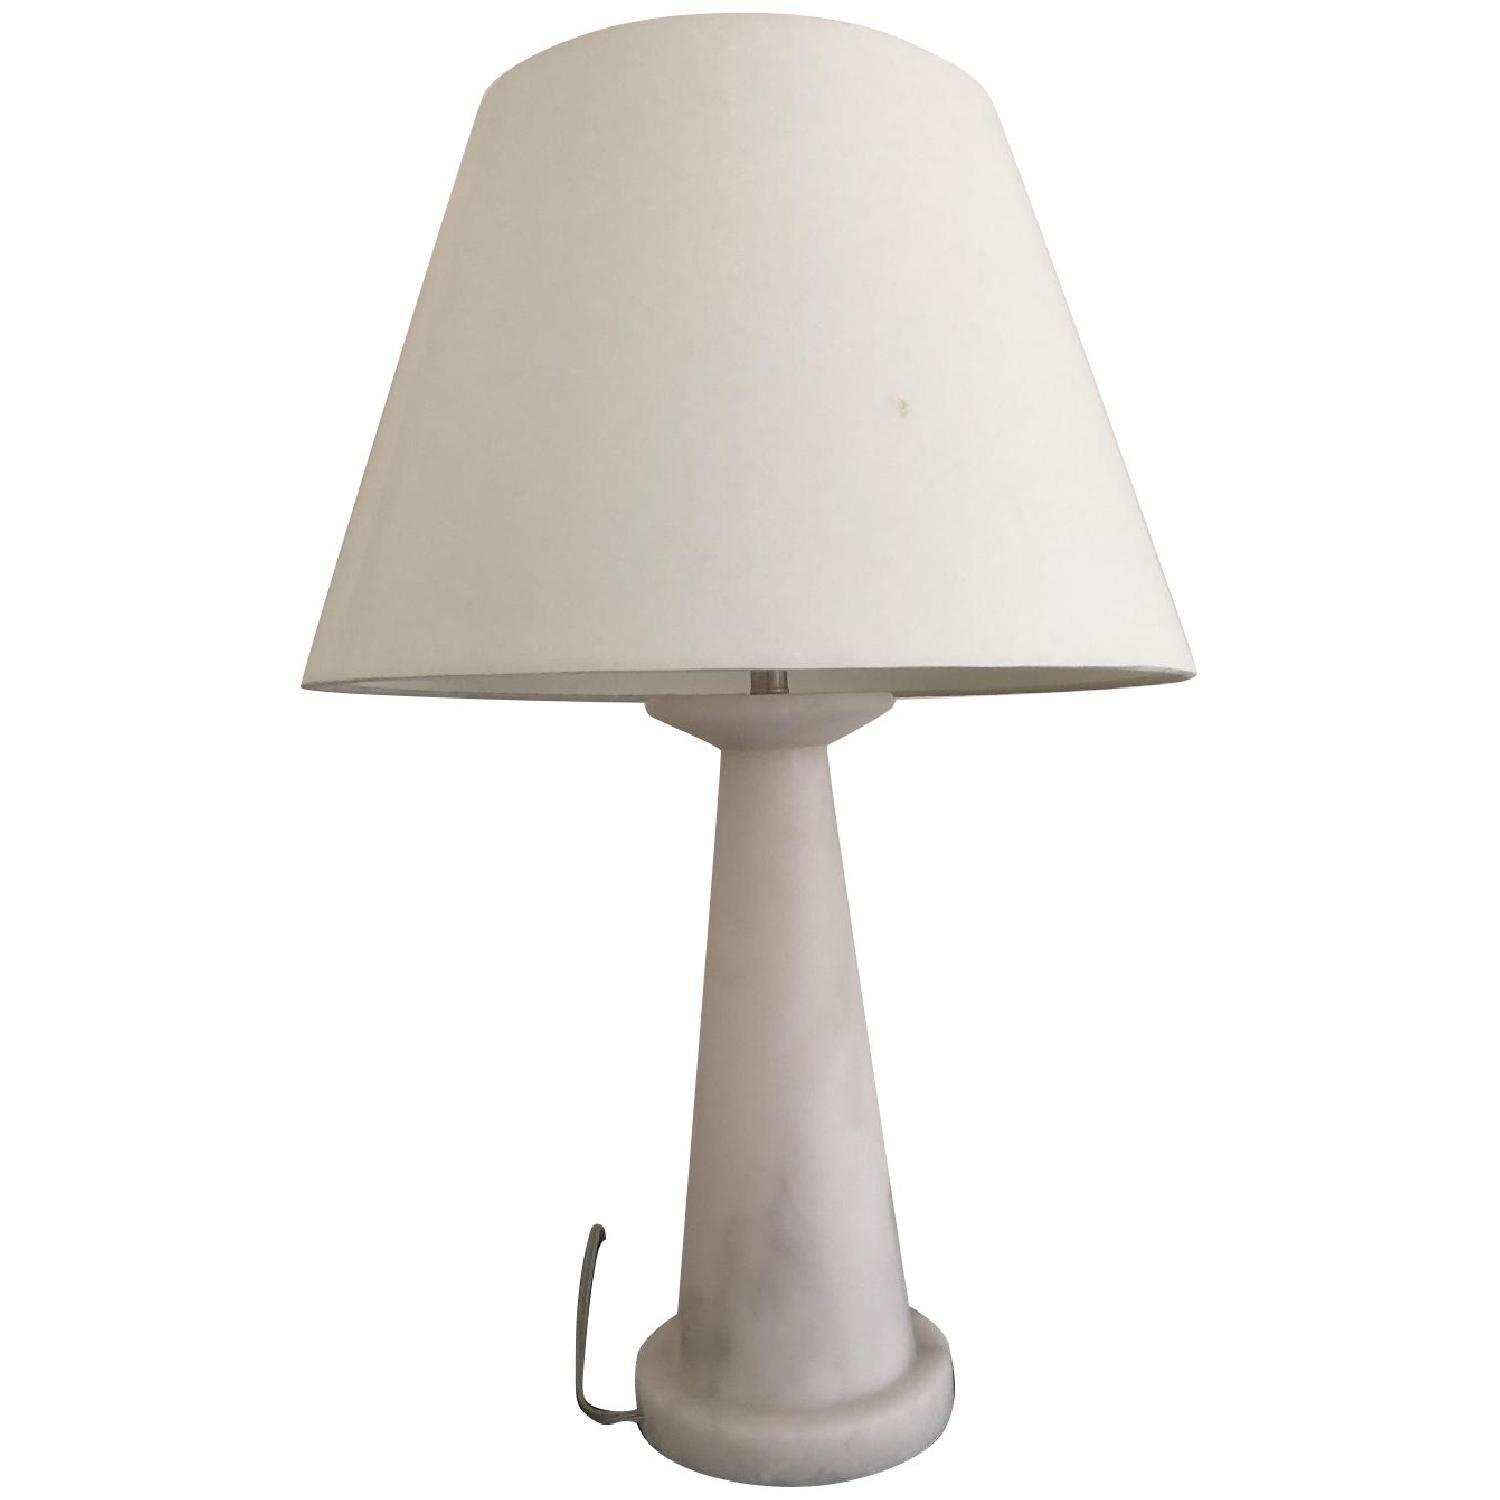 Crate & Barrel Marble Table Lamps